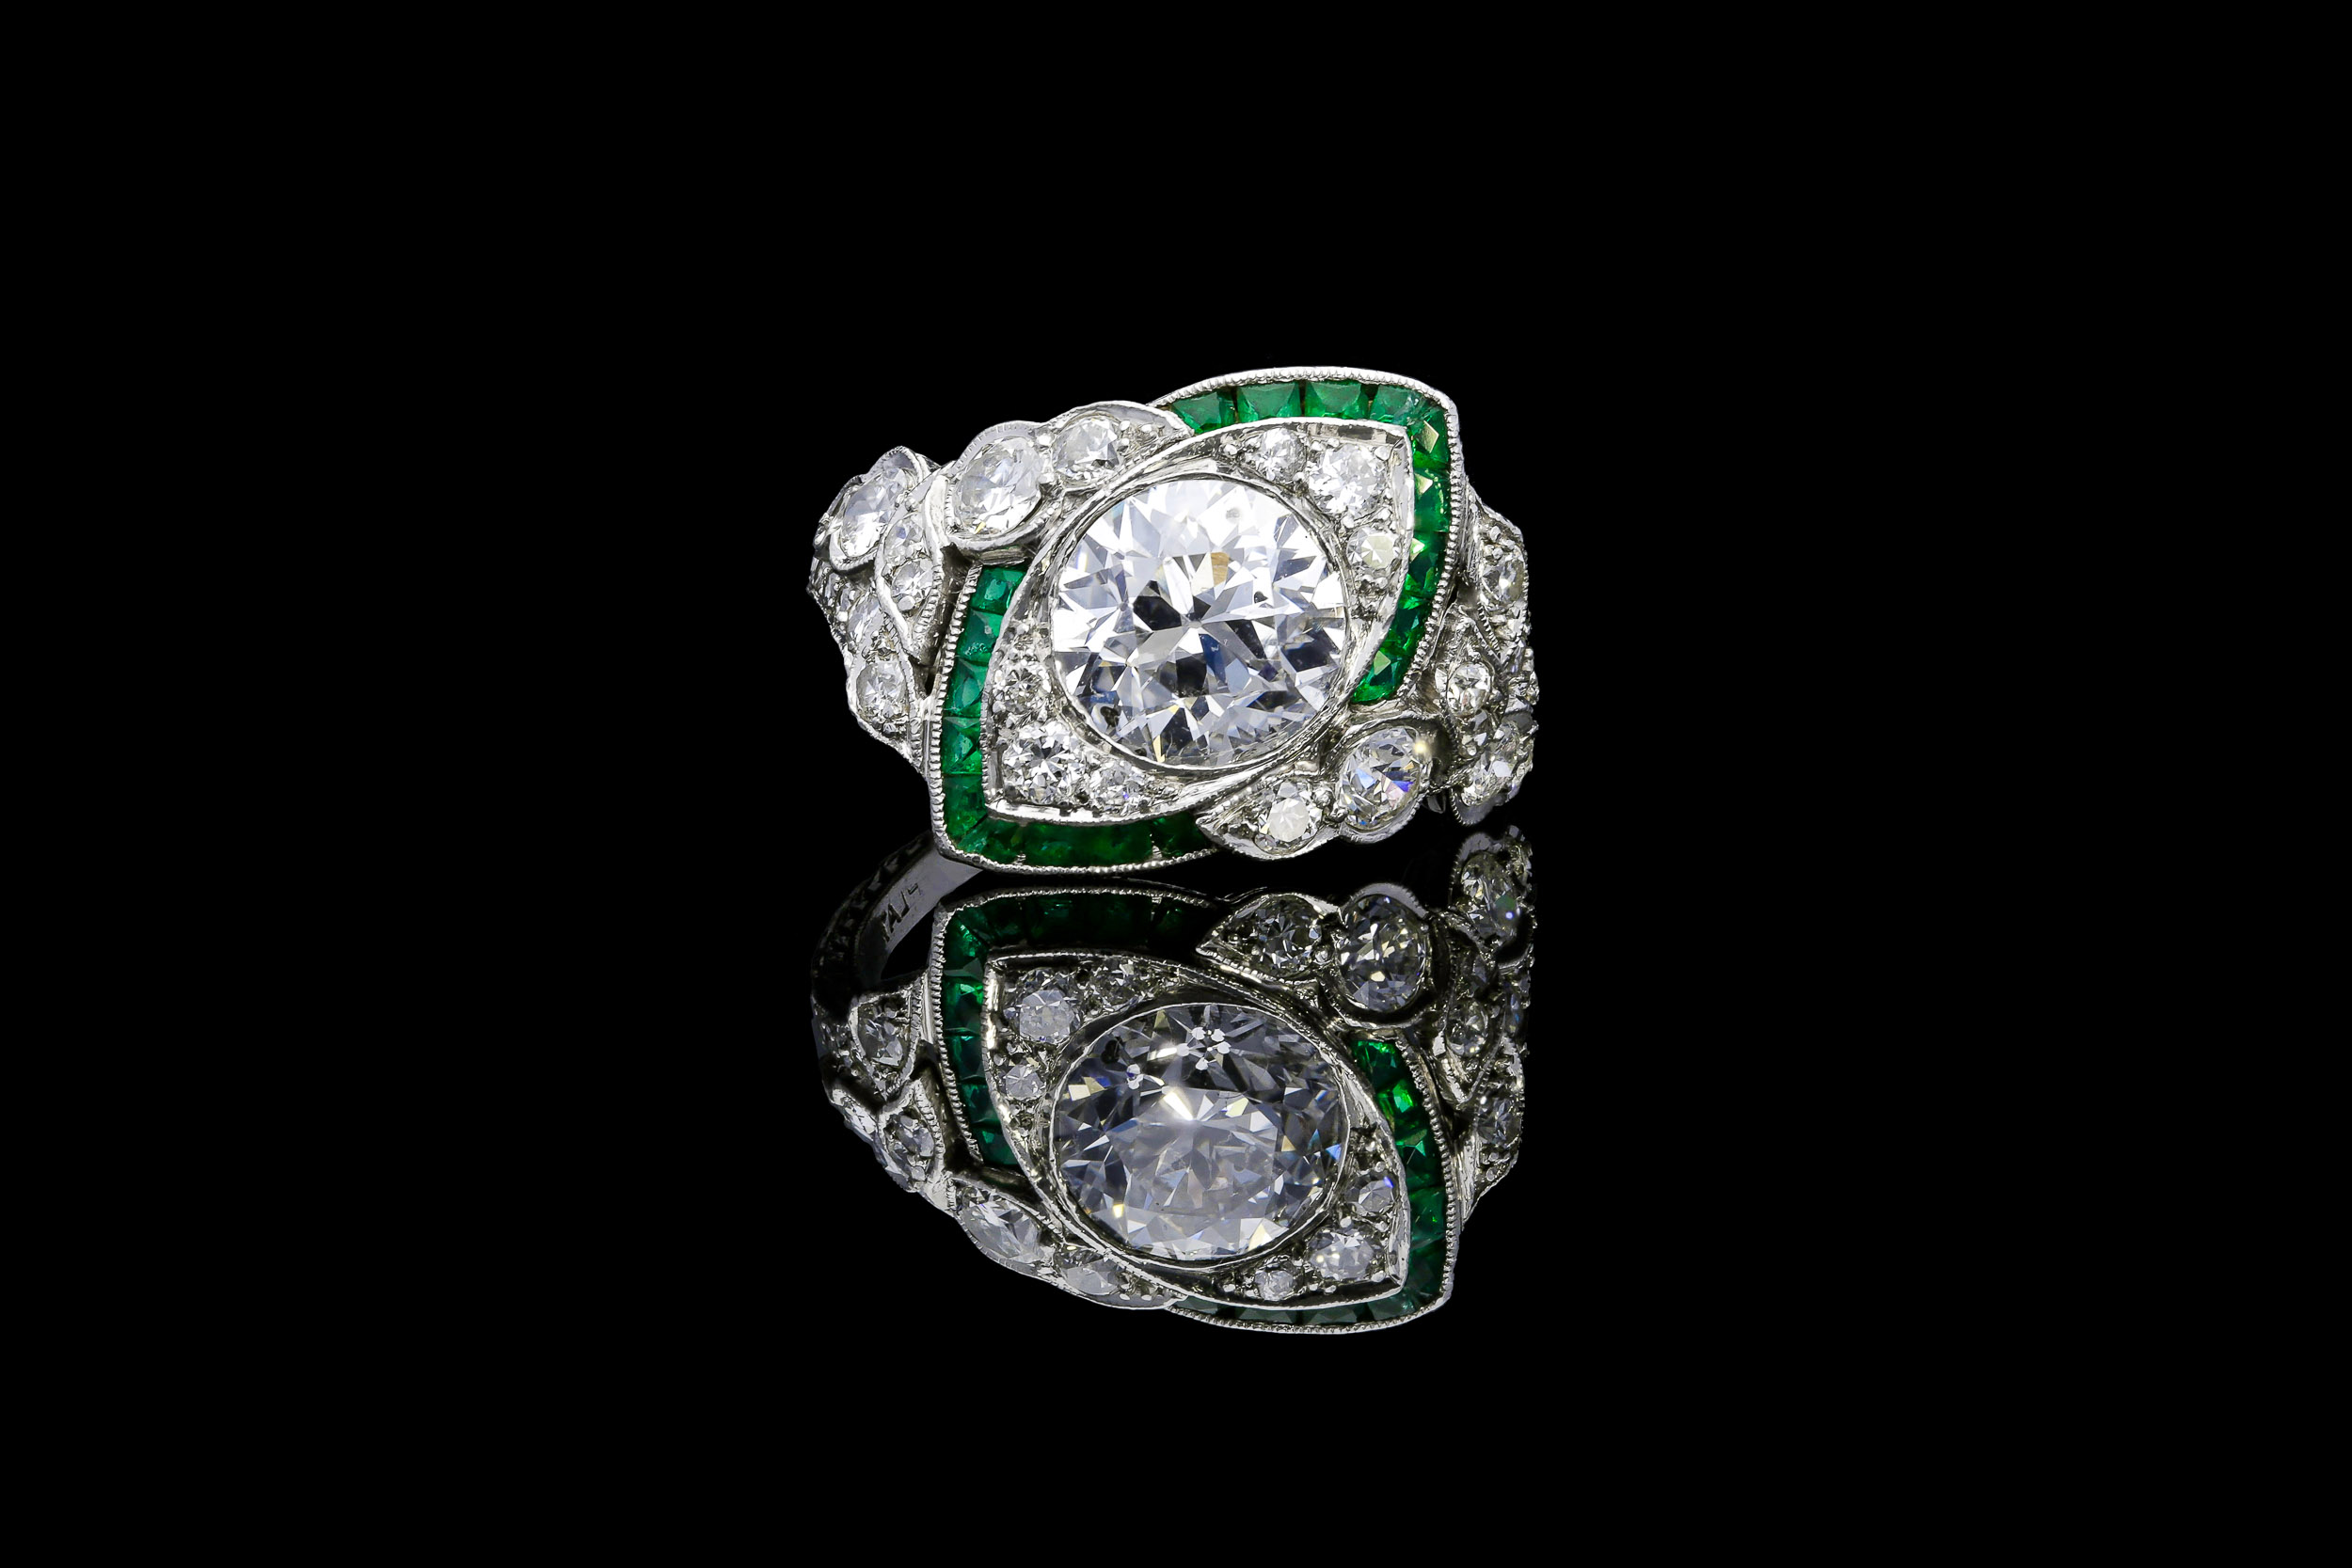 Art Nouveau Art Deco crossover ring | £25450